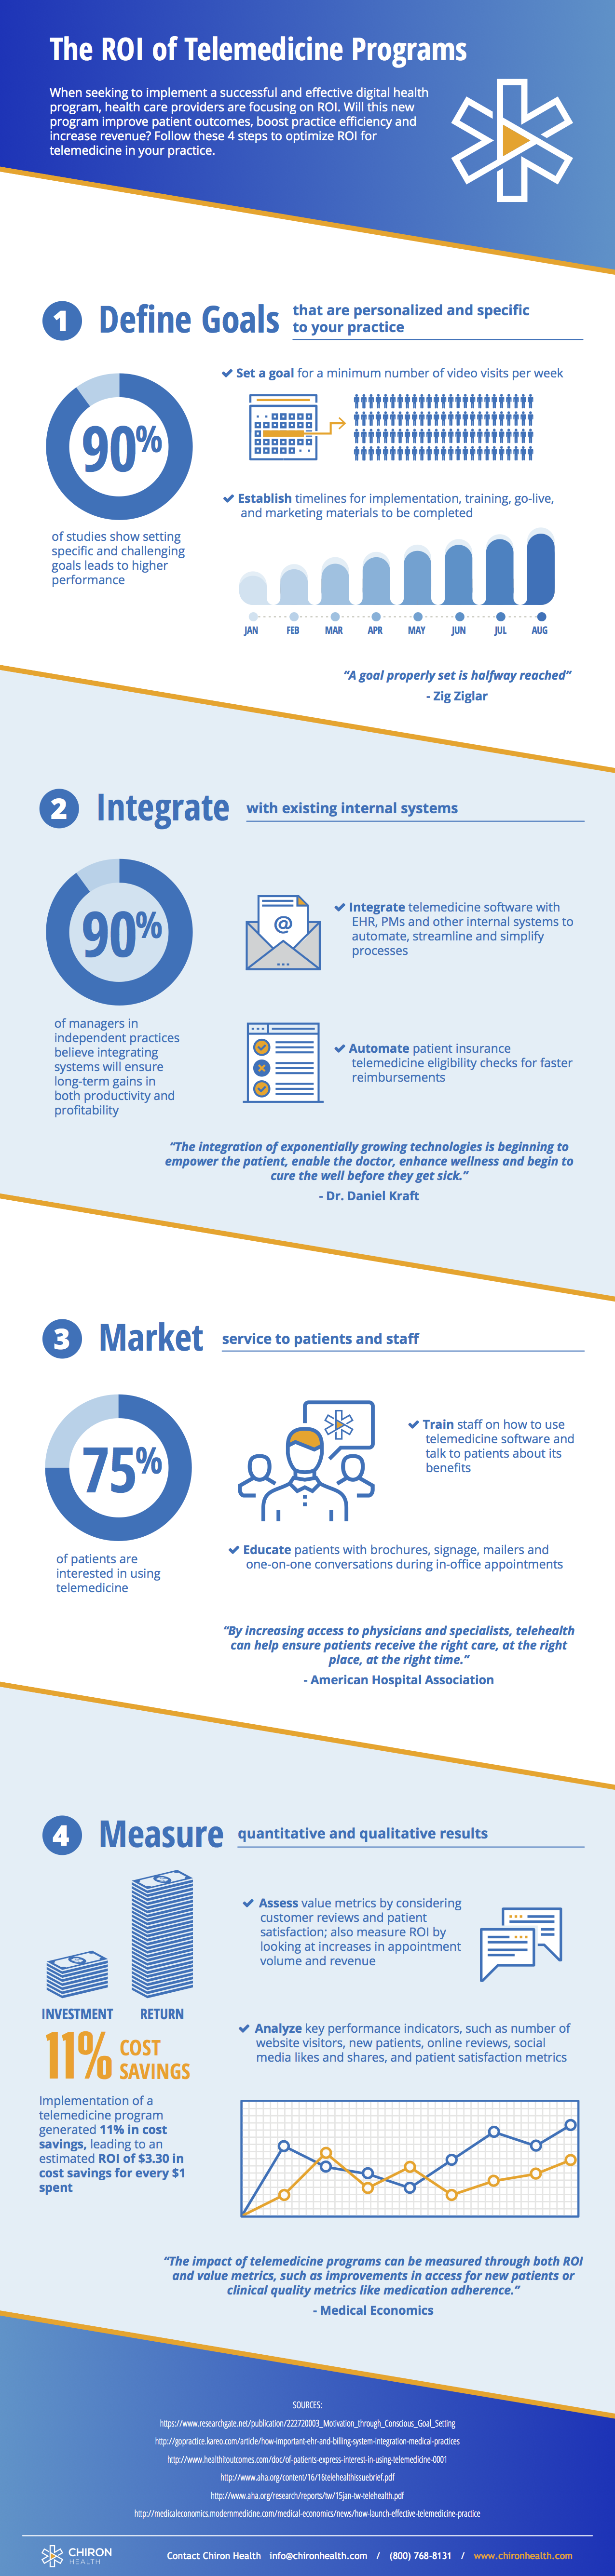 Chiron-Health-Infographic-ROI-Telemedicine_Final.png